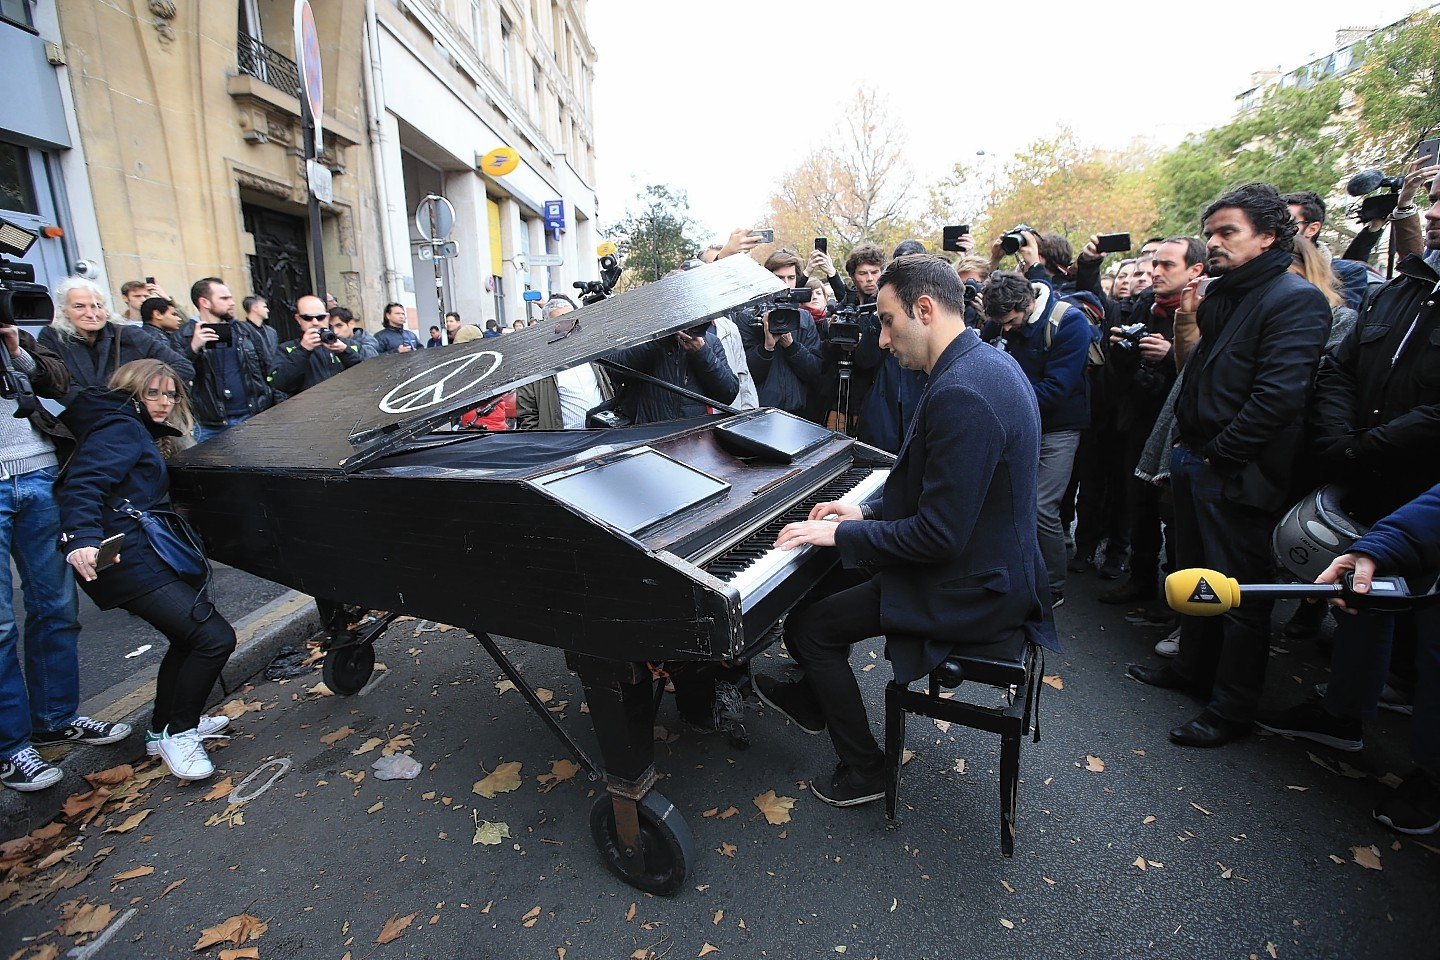 An unnamed man brings his portable grand piano and plays John Lennon's Imagine by the Bataclan, Paris, one of the venues for the attacks